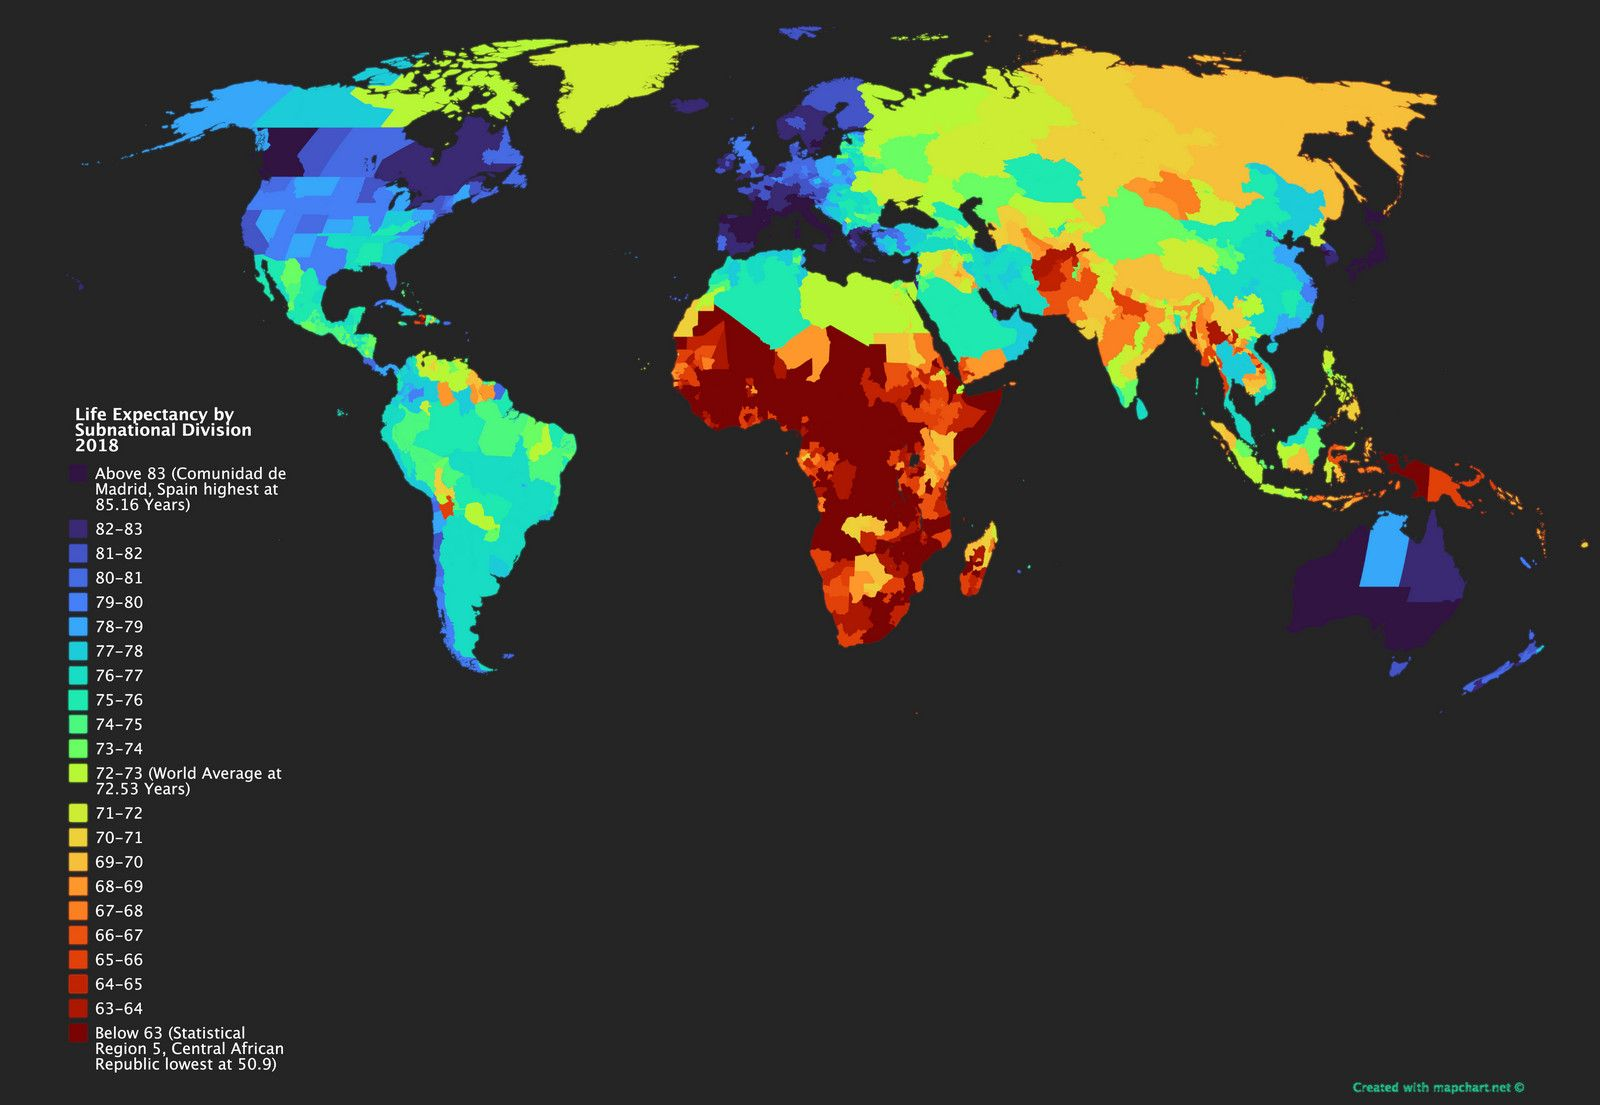 Life Expectancy Of Subnational Divisions Vivid Maps History Subject Map History Painting